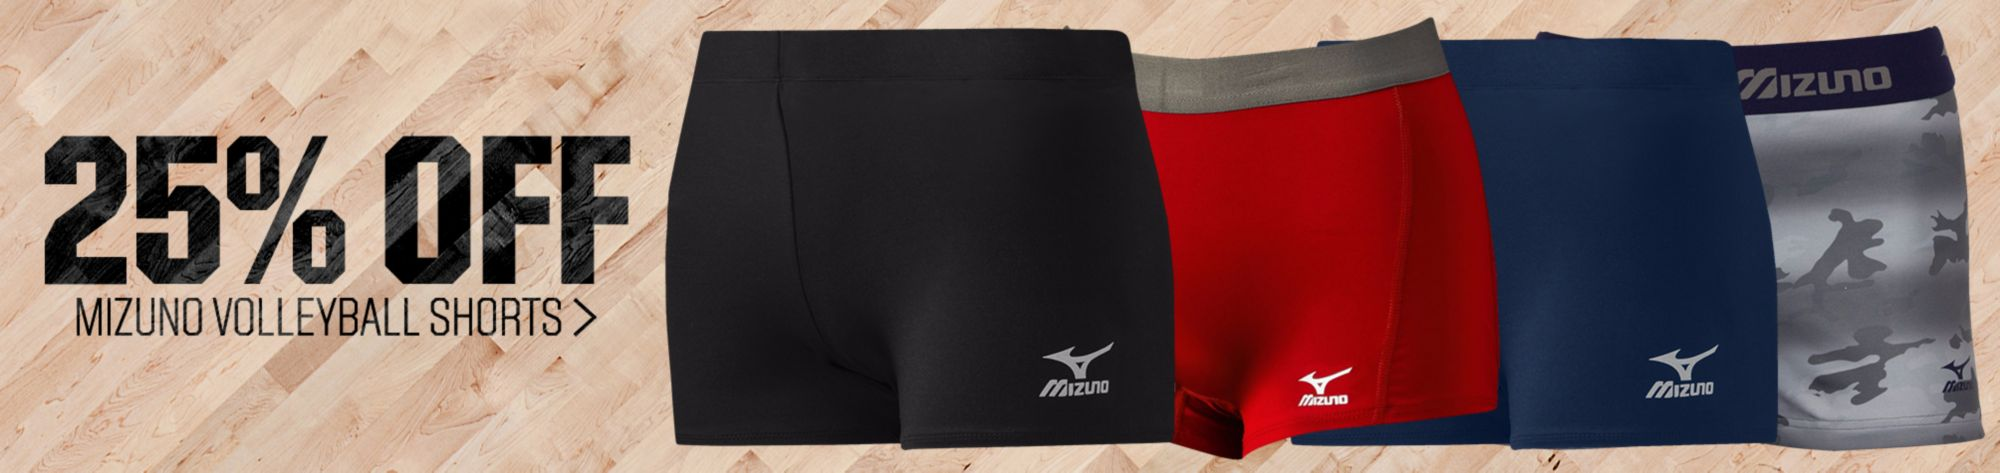 25% off Mizuno Volleyball Shorts